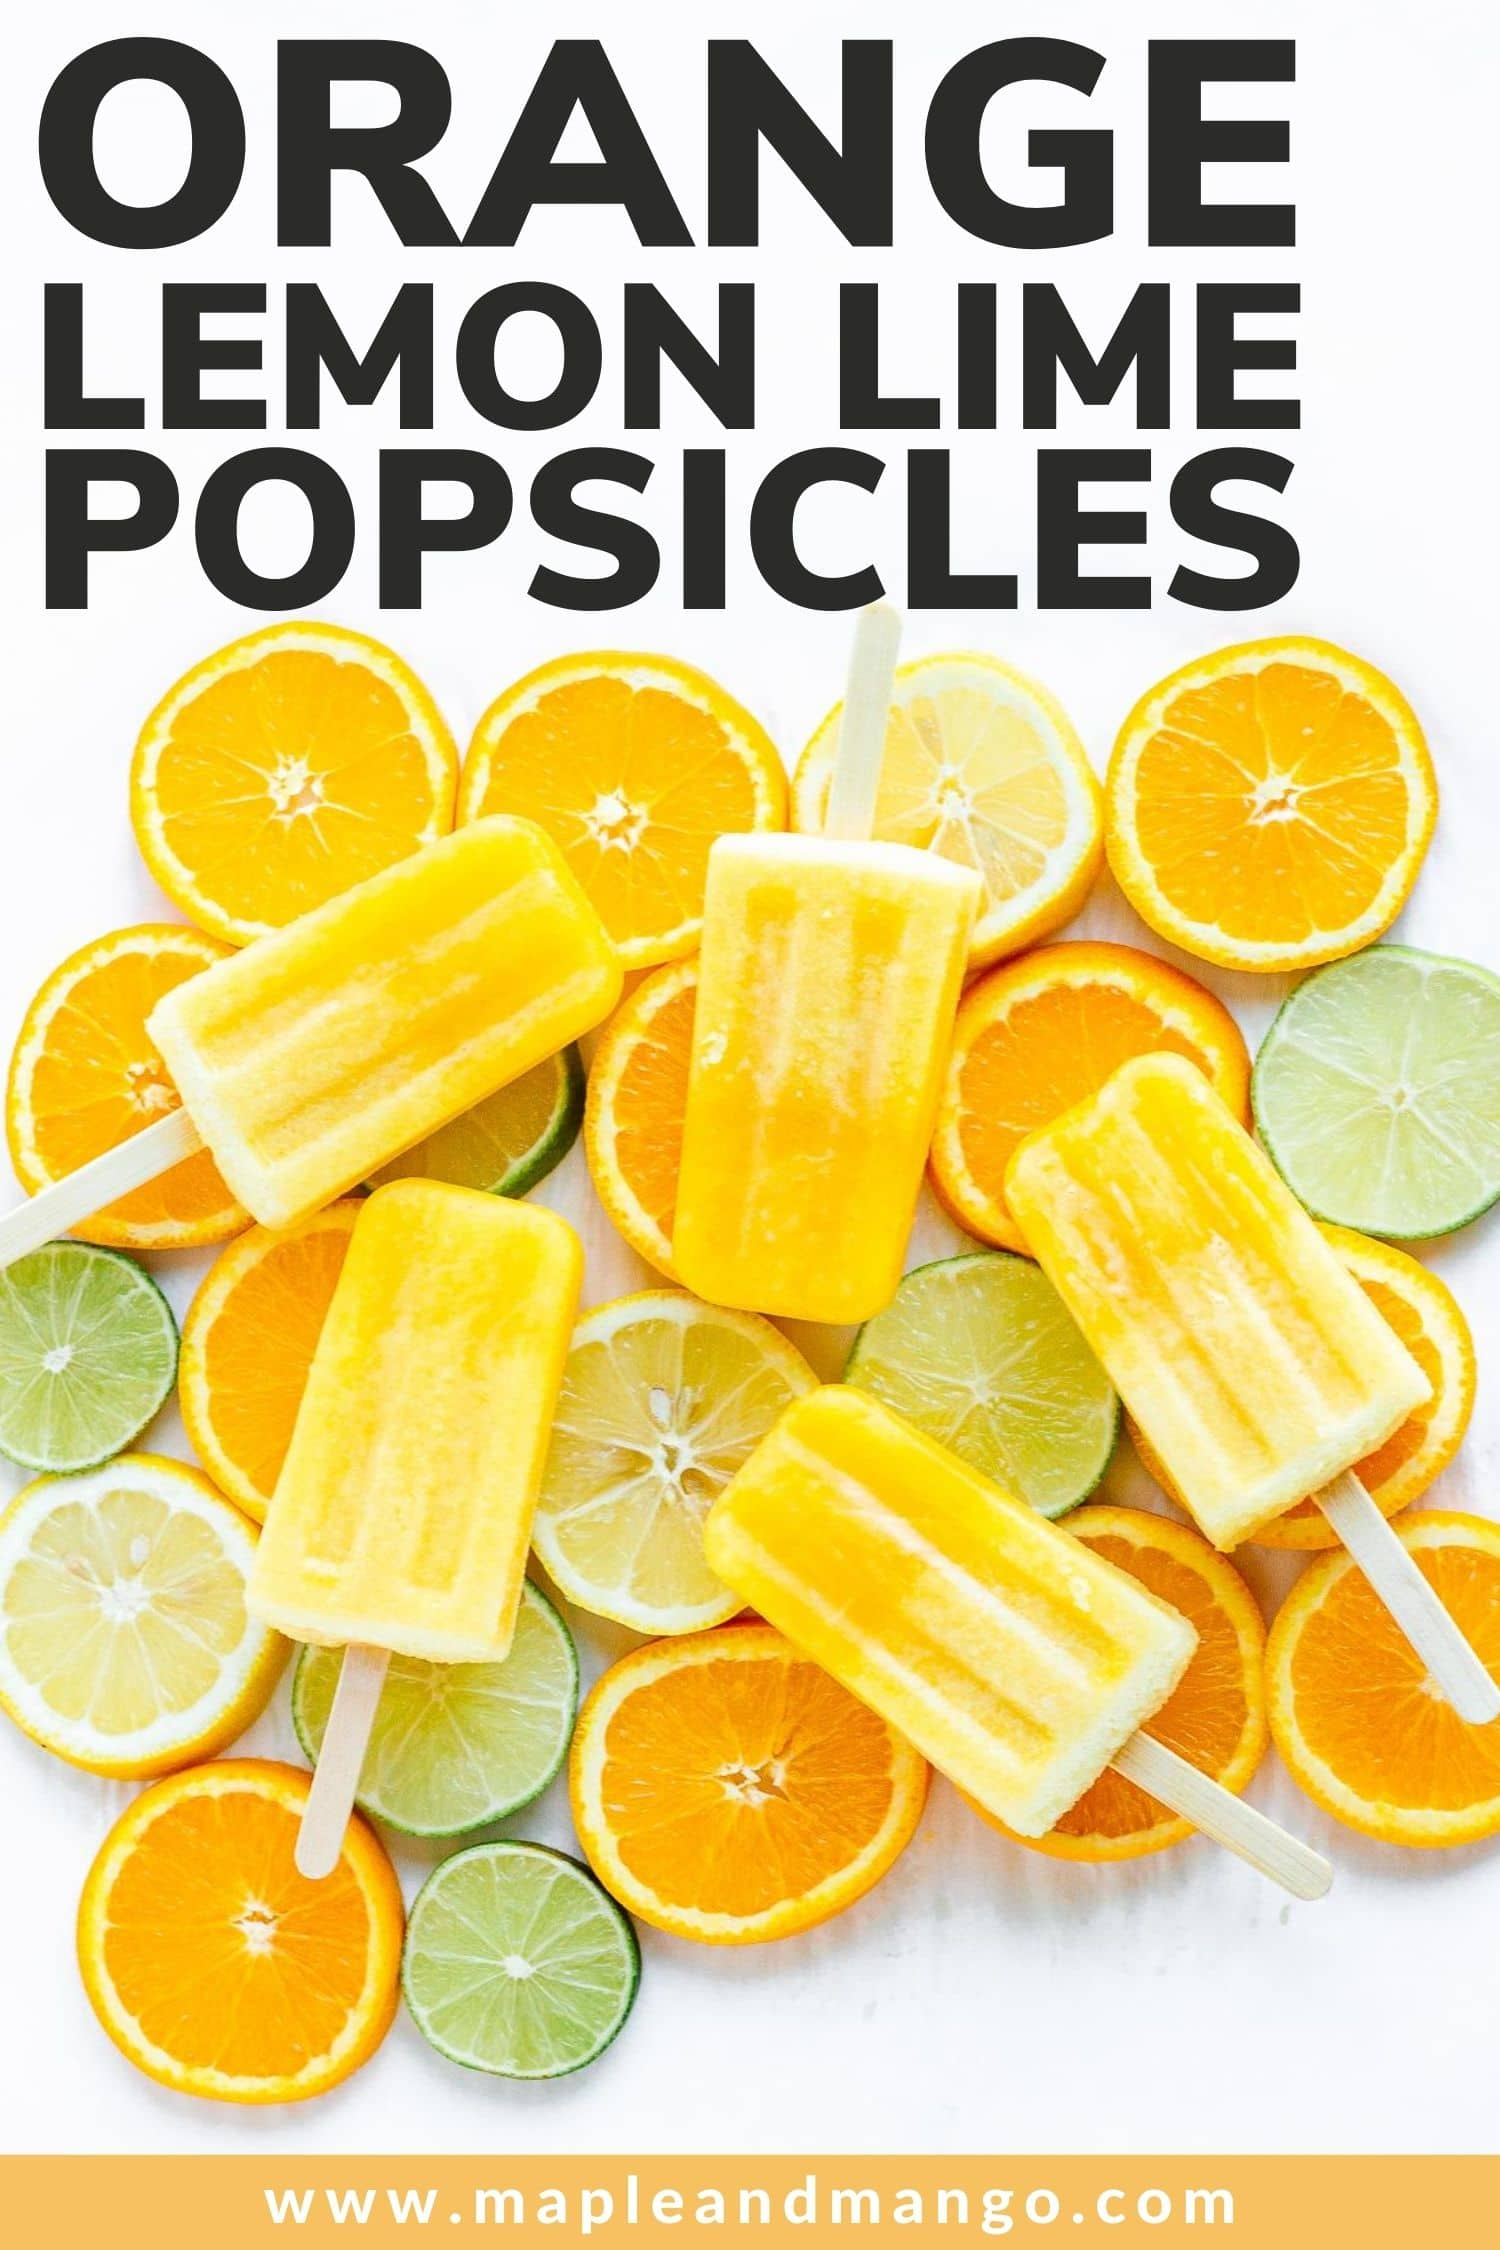 """Five popsicles set on top of a variety of sliced citrus with text overlay """"Orange Lemon Lime Popsicles""""."""